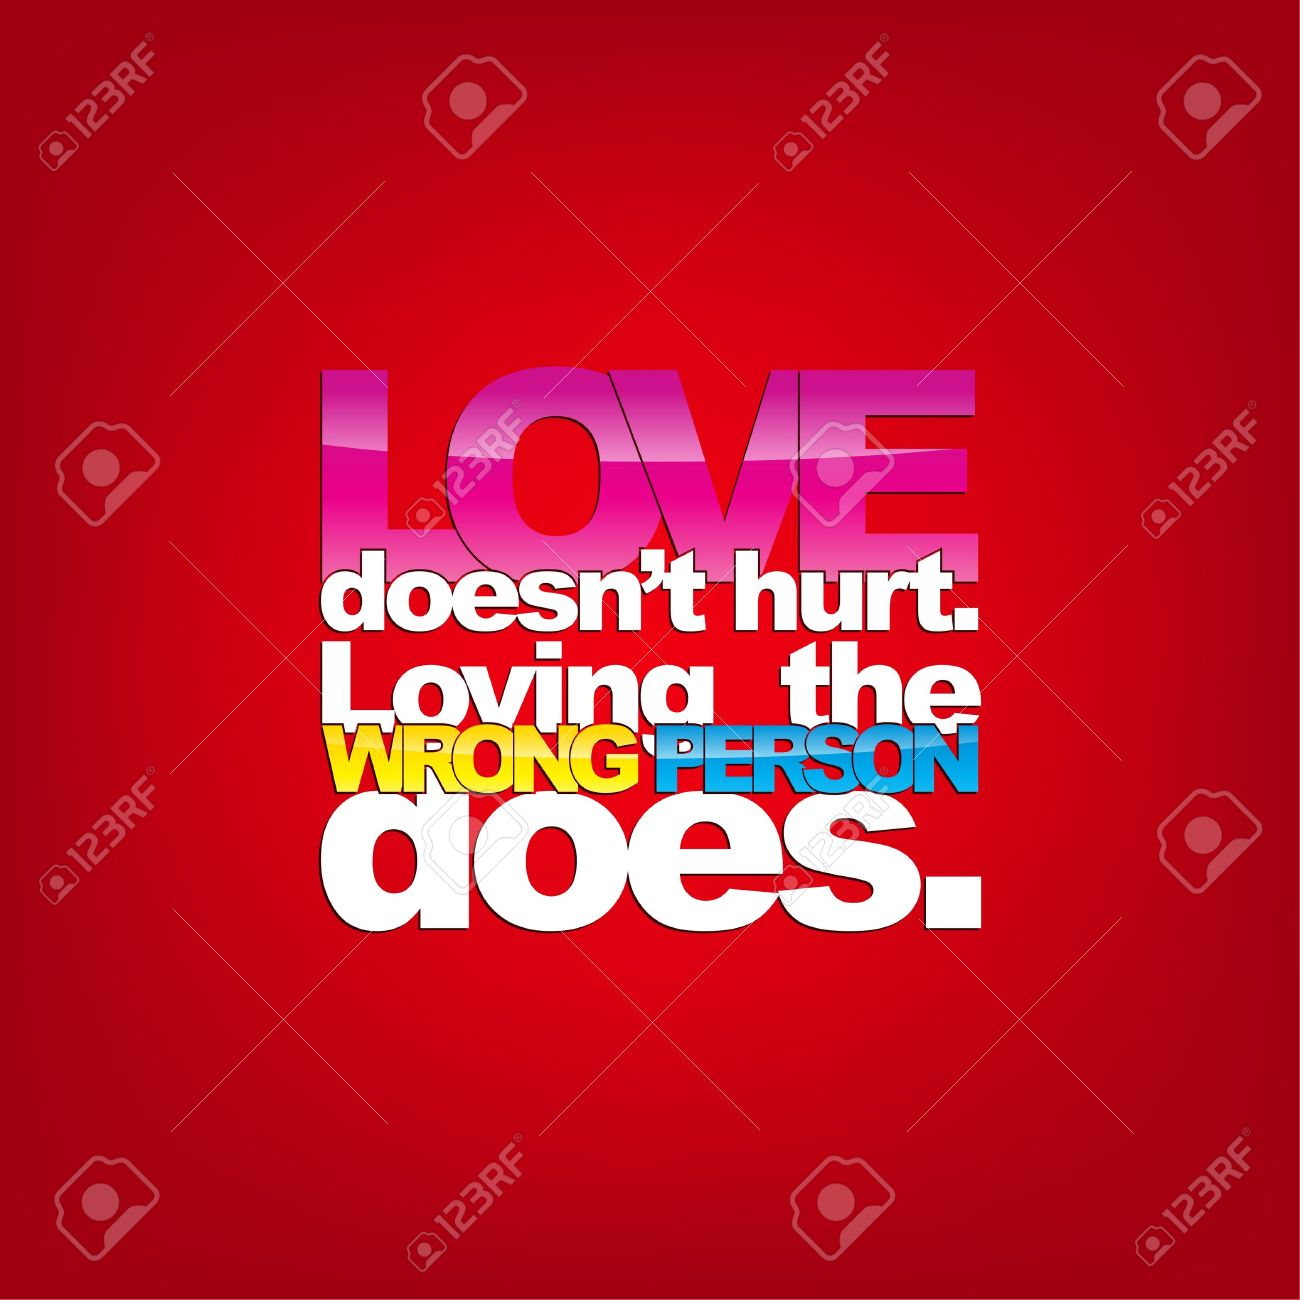 Superior Love Doesnu0027t Hurt. Loving The Wrong Person Does. Typography Background  Stock Vector